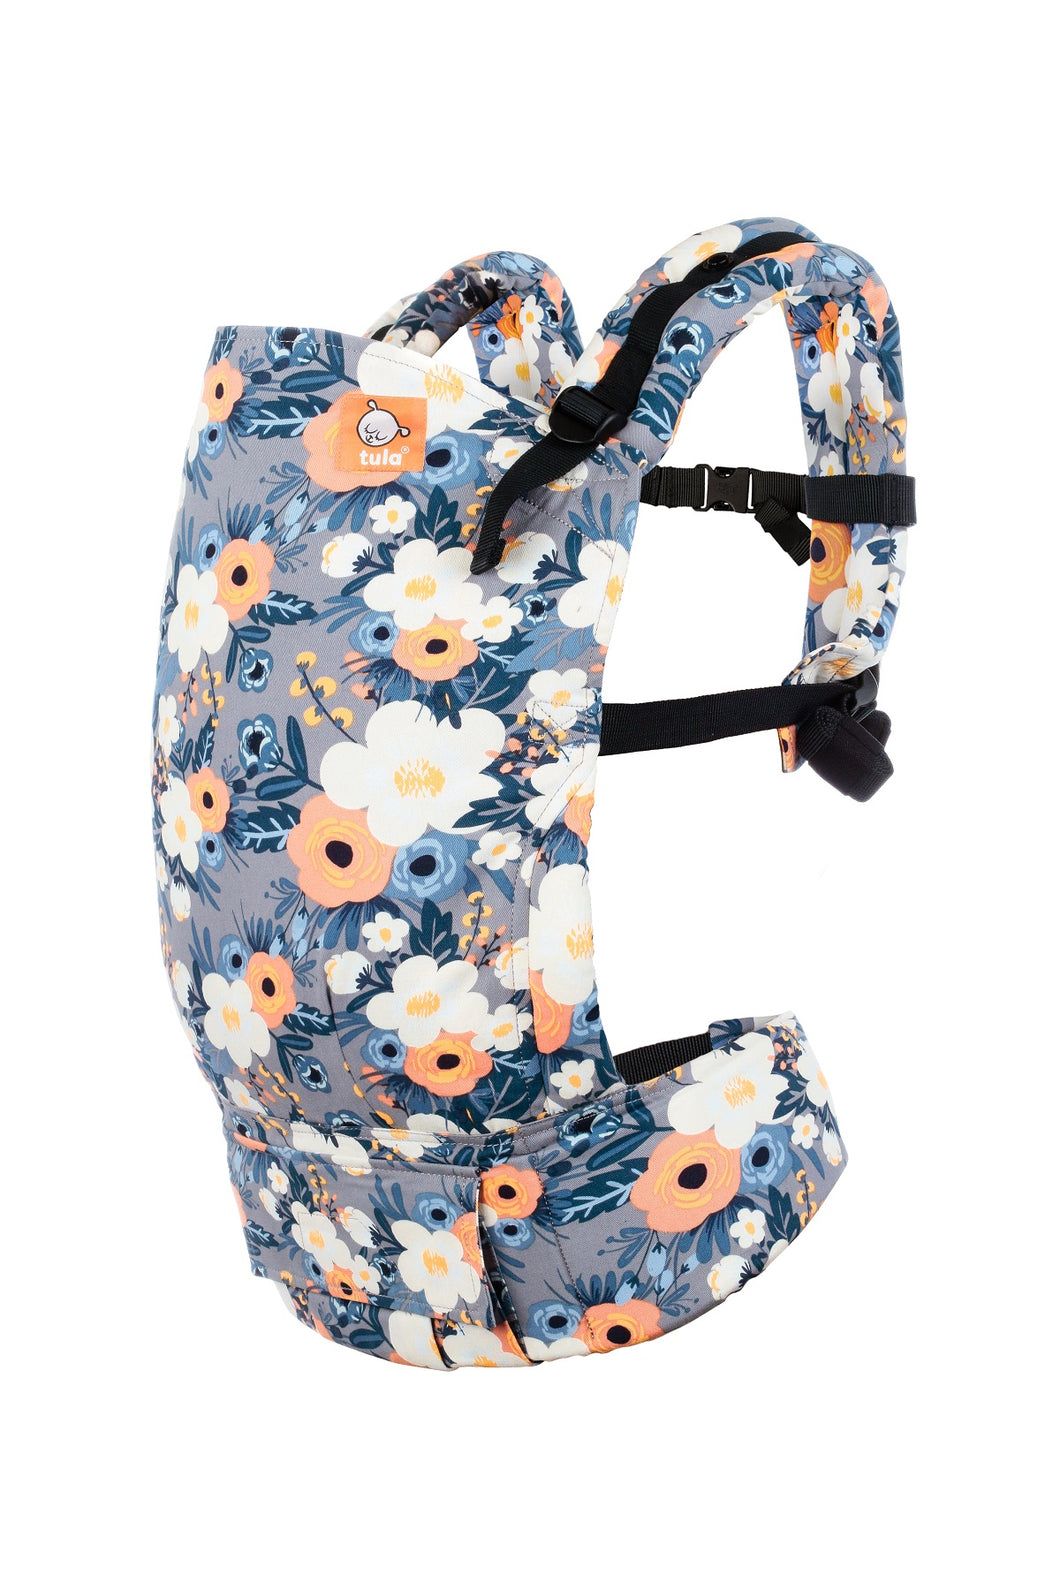 French Marigold - Tula Toddler Carrier - Baby Tula UK